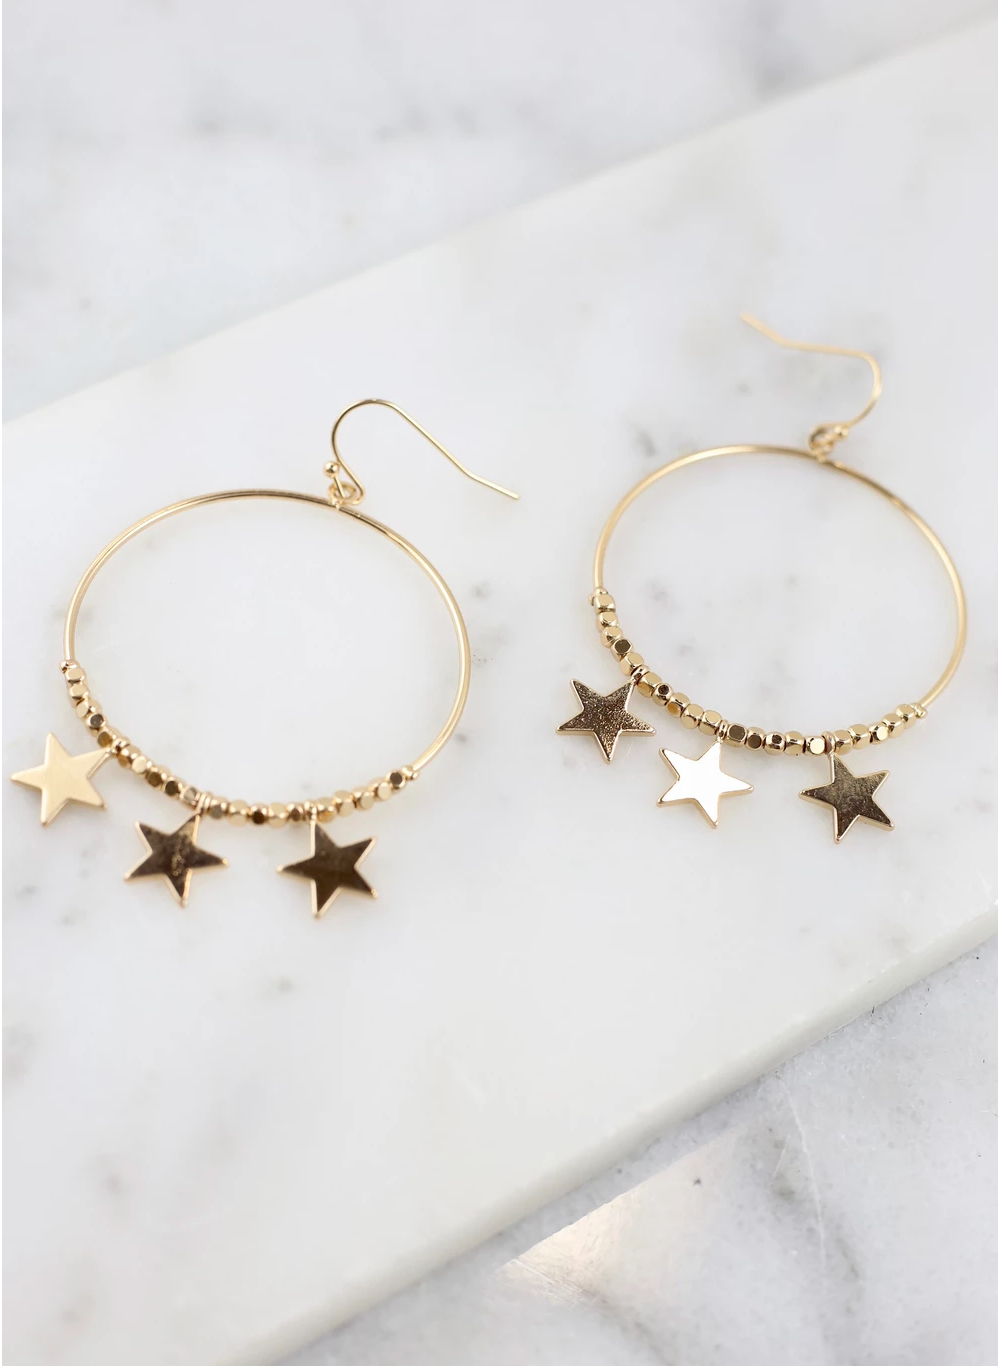 Stars In The City - Gold Hoops With Star Charms